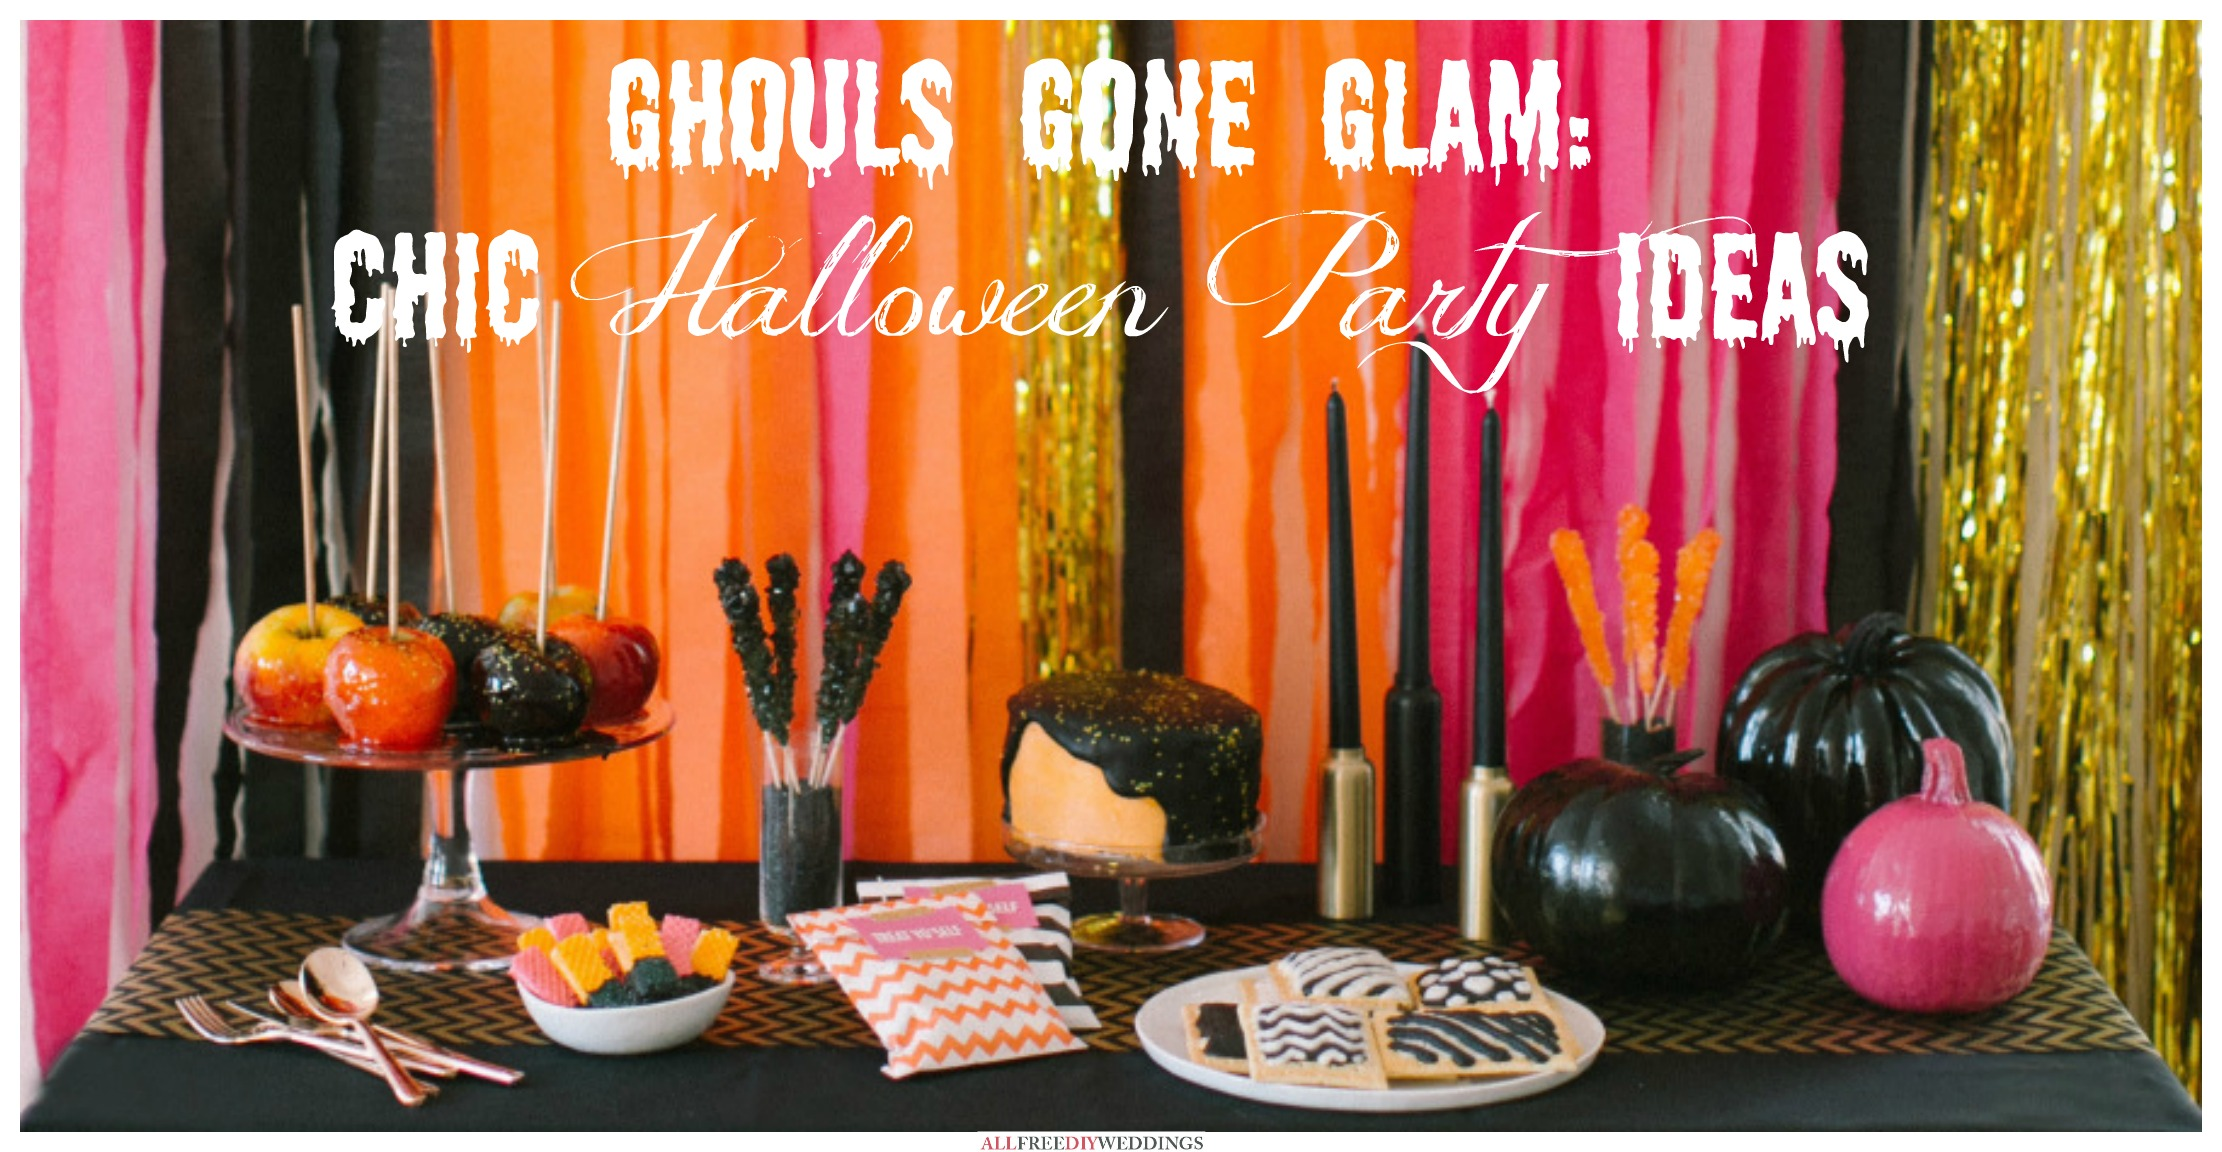 ghouls gone glam chic halloween party ideas craft paper scissors. Black Bedroom Furniture Sets. Home Design Ideas